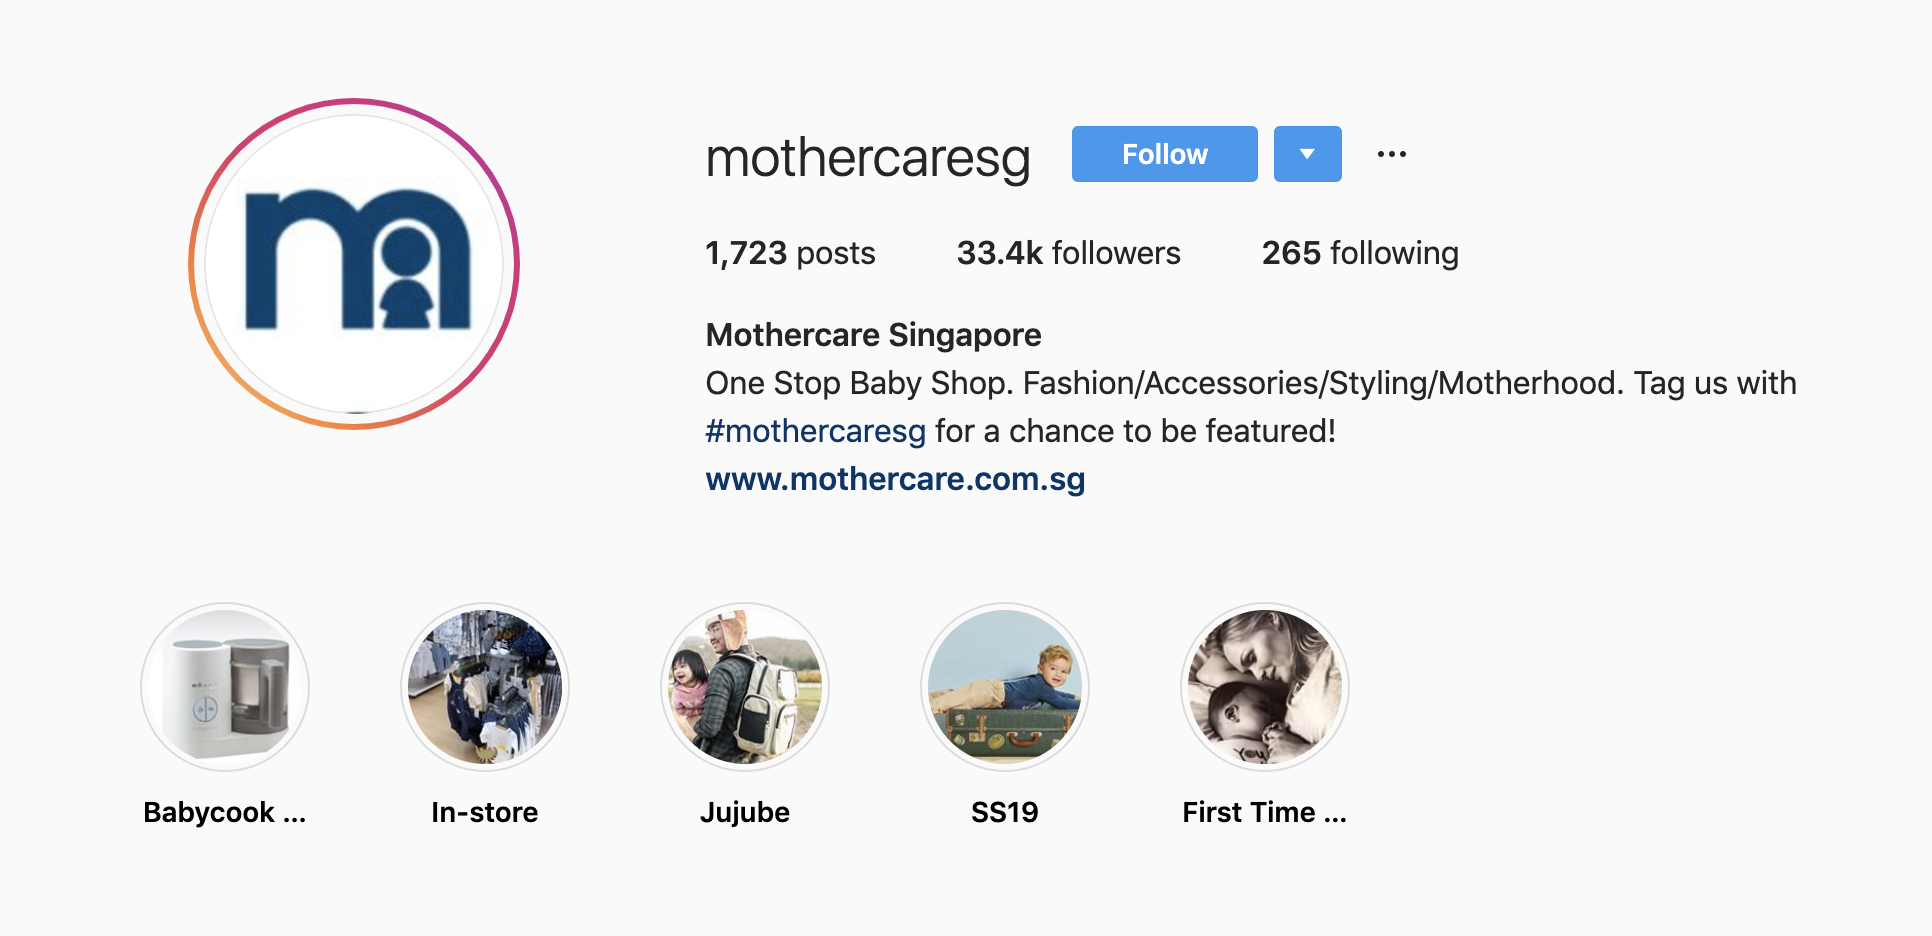 6 Singapore social media stats marketers should know